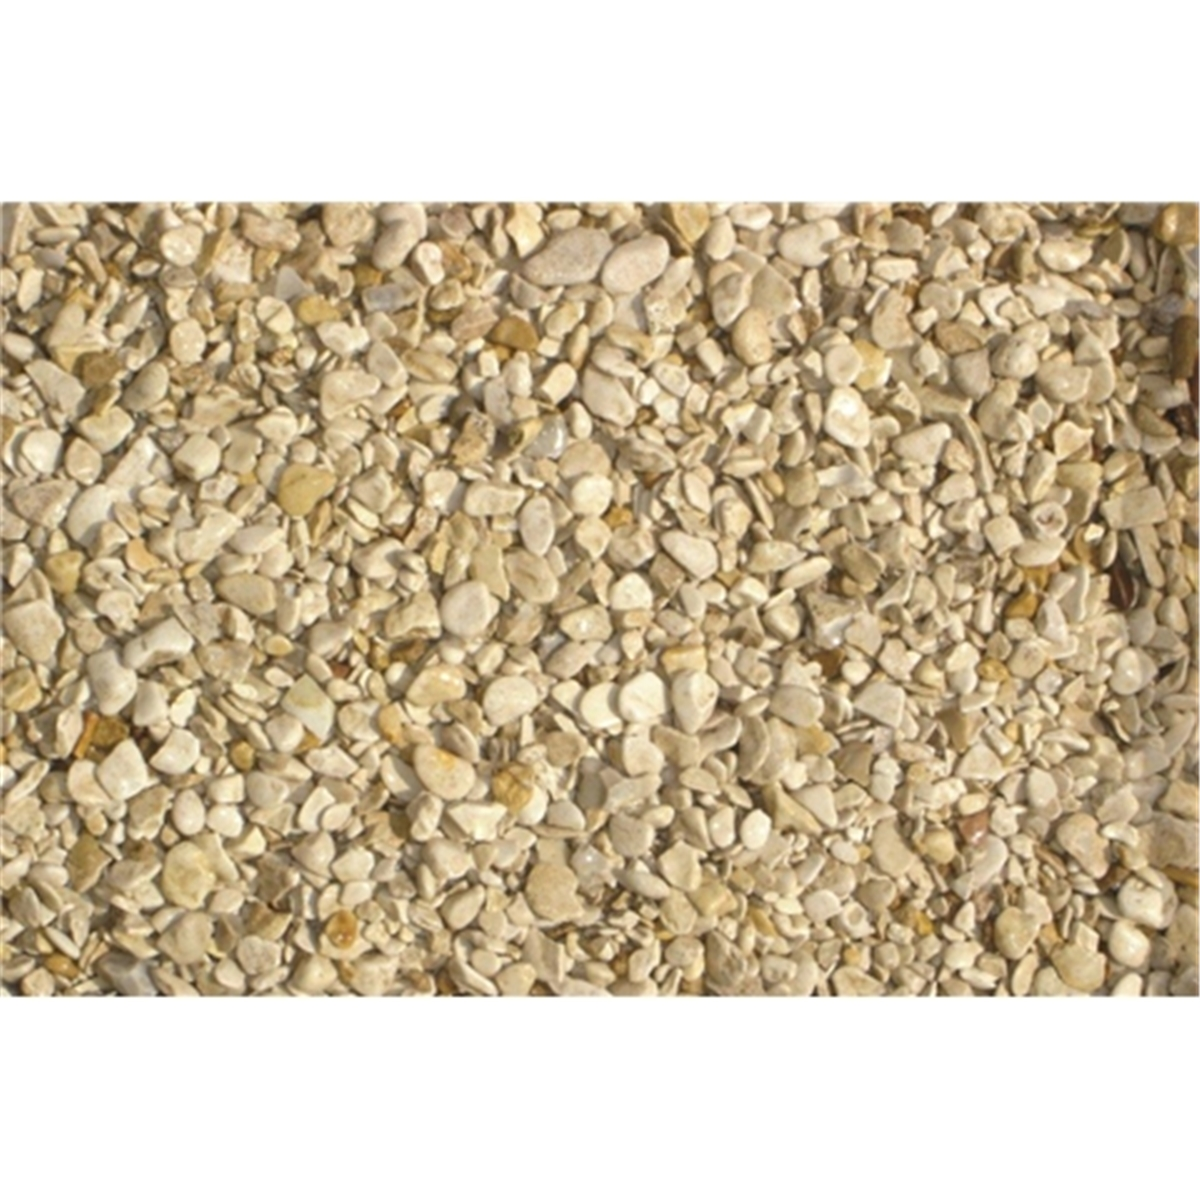 Bulk Bag 850kg Cornish Cream Gravel